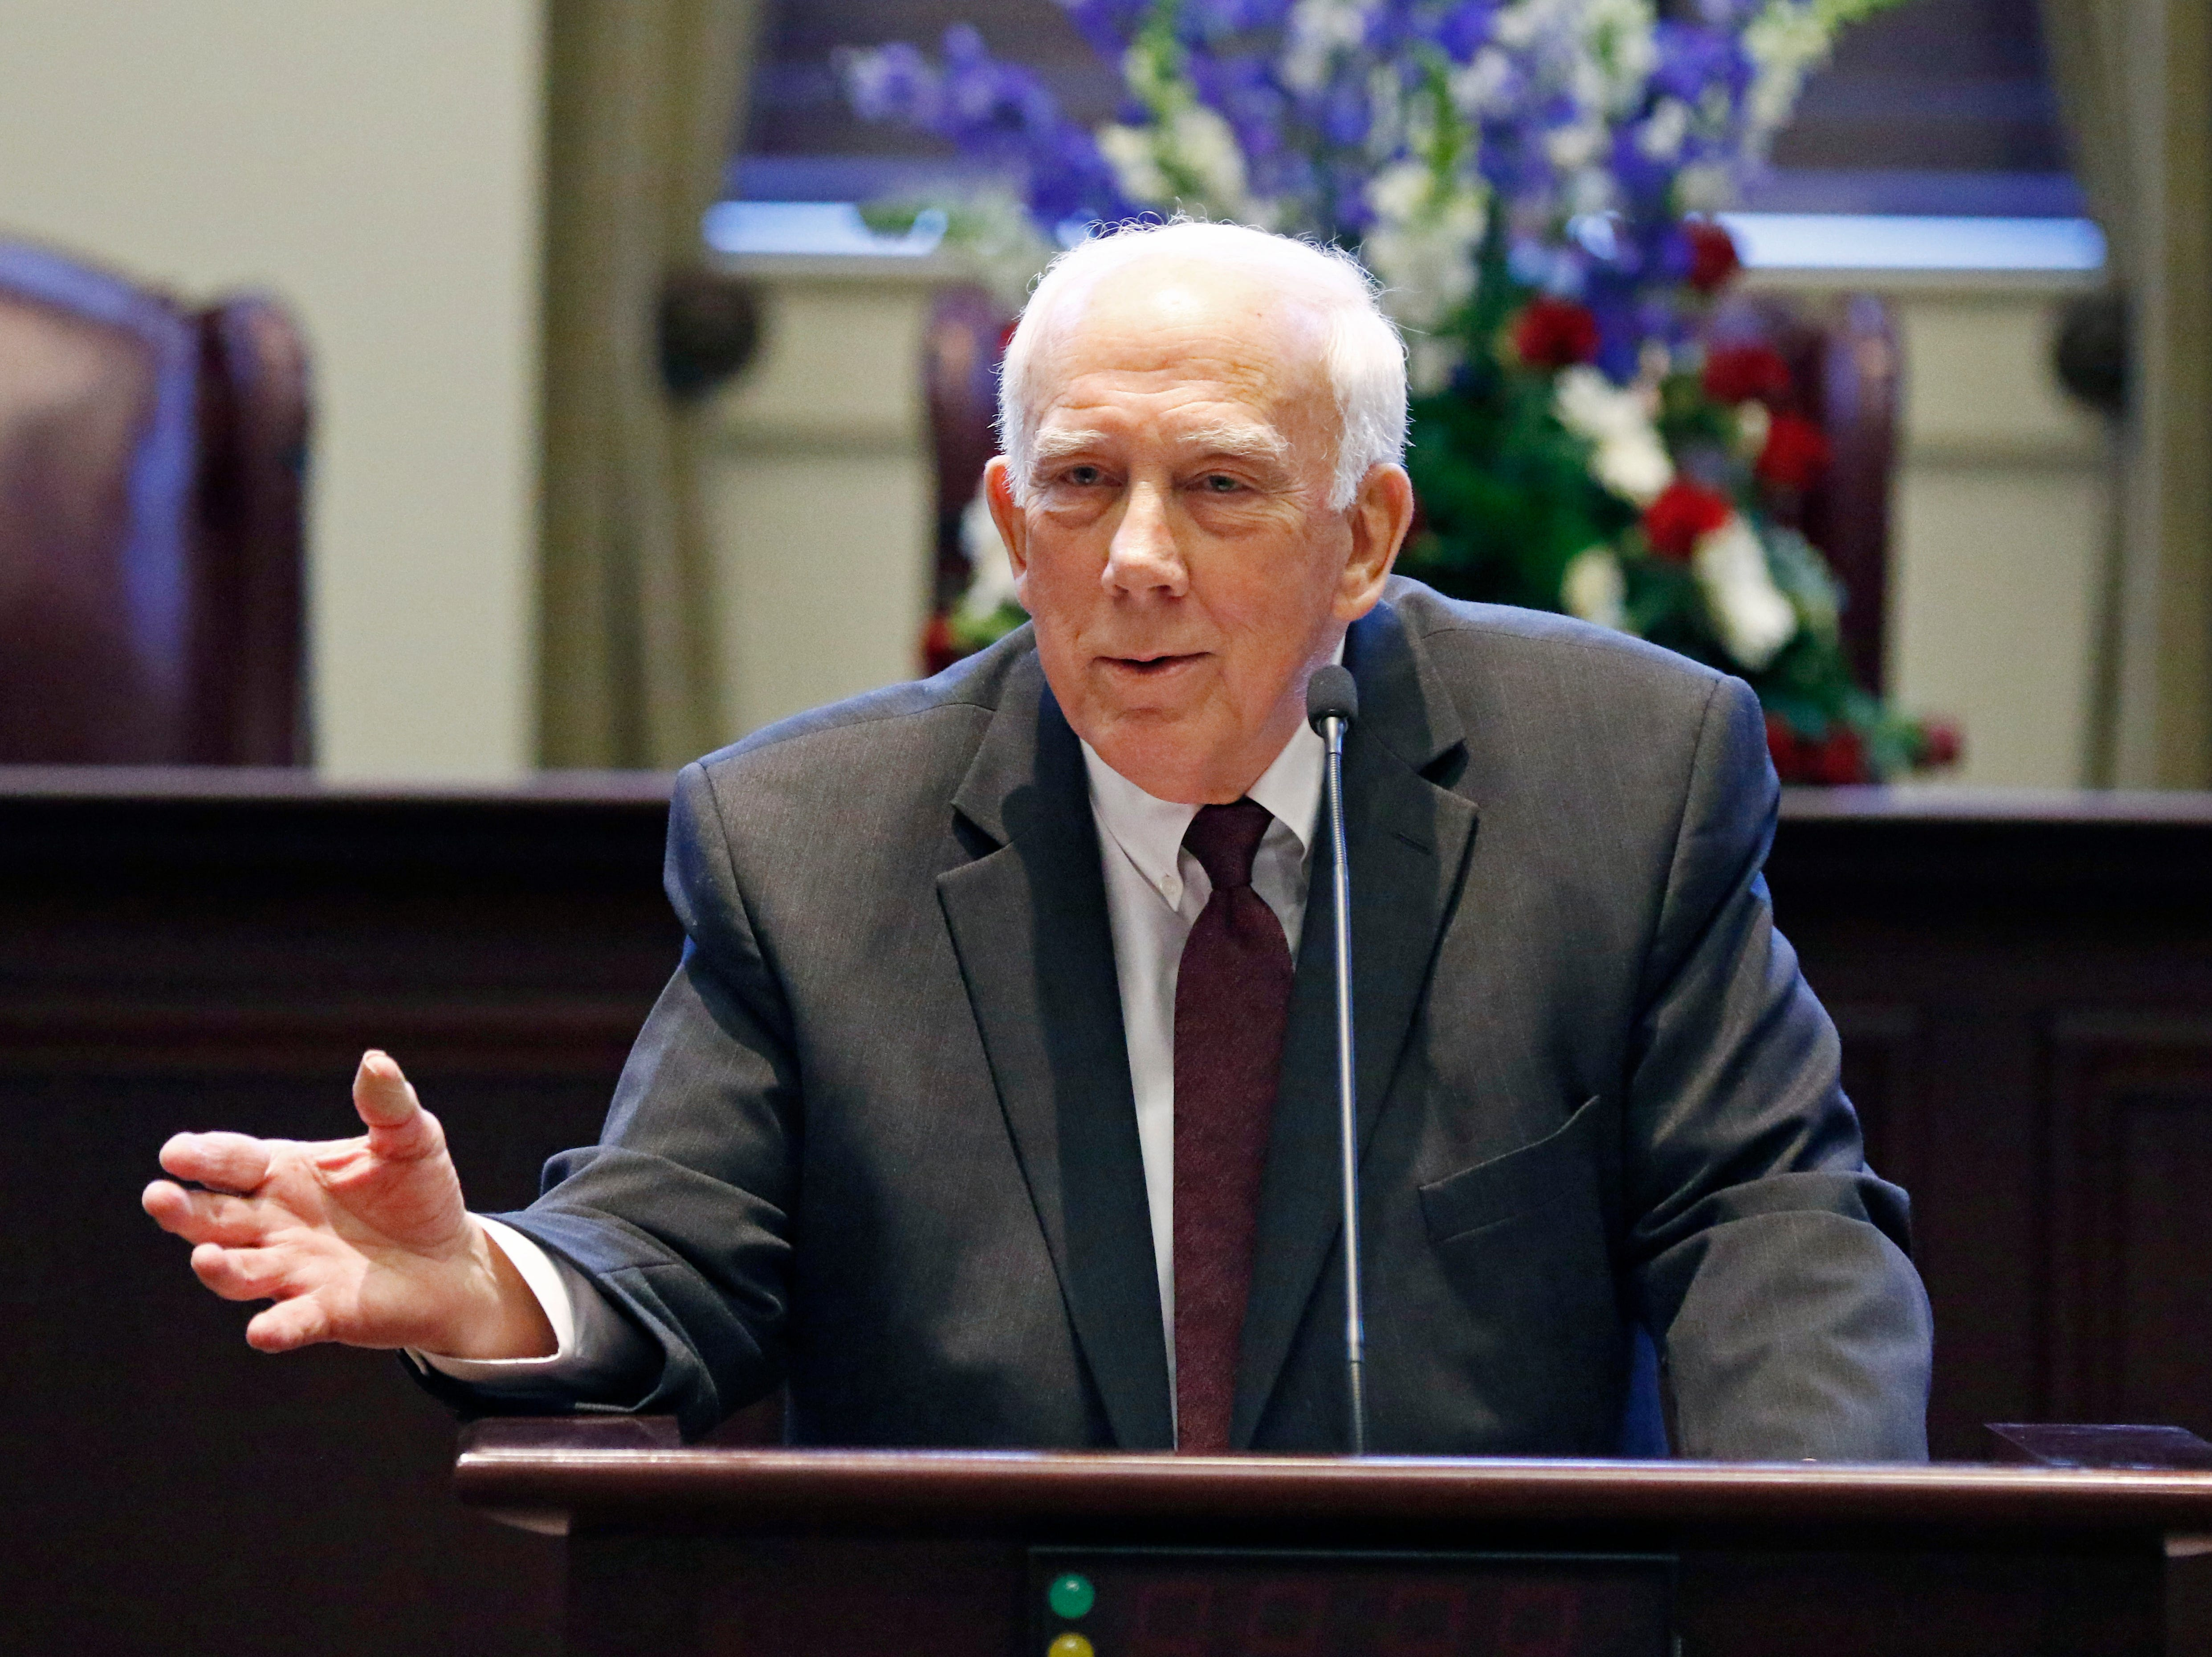 Presiding Supreme Court Justice James W. Kitchens, tells a story about his friend, Mississippi Supreme Court Chief Justice William L. Waller Jr., during a retirement ceremony honoring Waller at the Mississippi Supreme Court chambers in Jackson, Miss., Friday, Jan. 25, 2019. Waller officially retires on January 31 after more than 21 years of service on the Supreme Court and 10 years as Chief Justice. (AP Photo/Rogelio V. Solis)